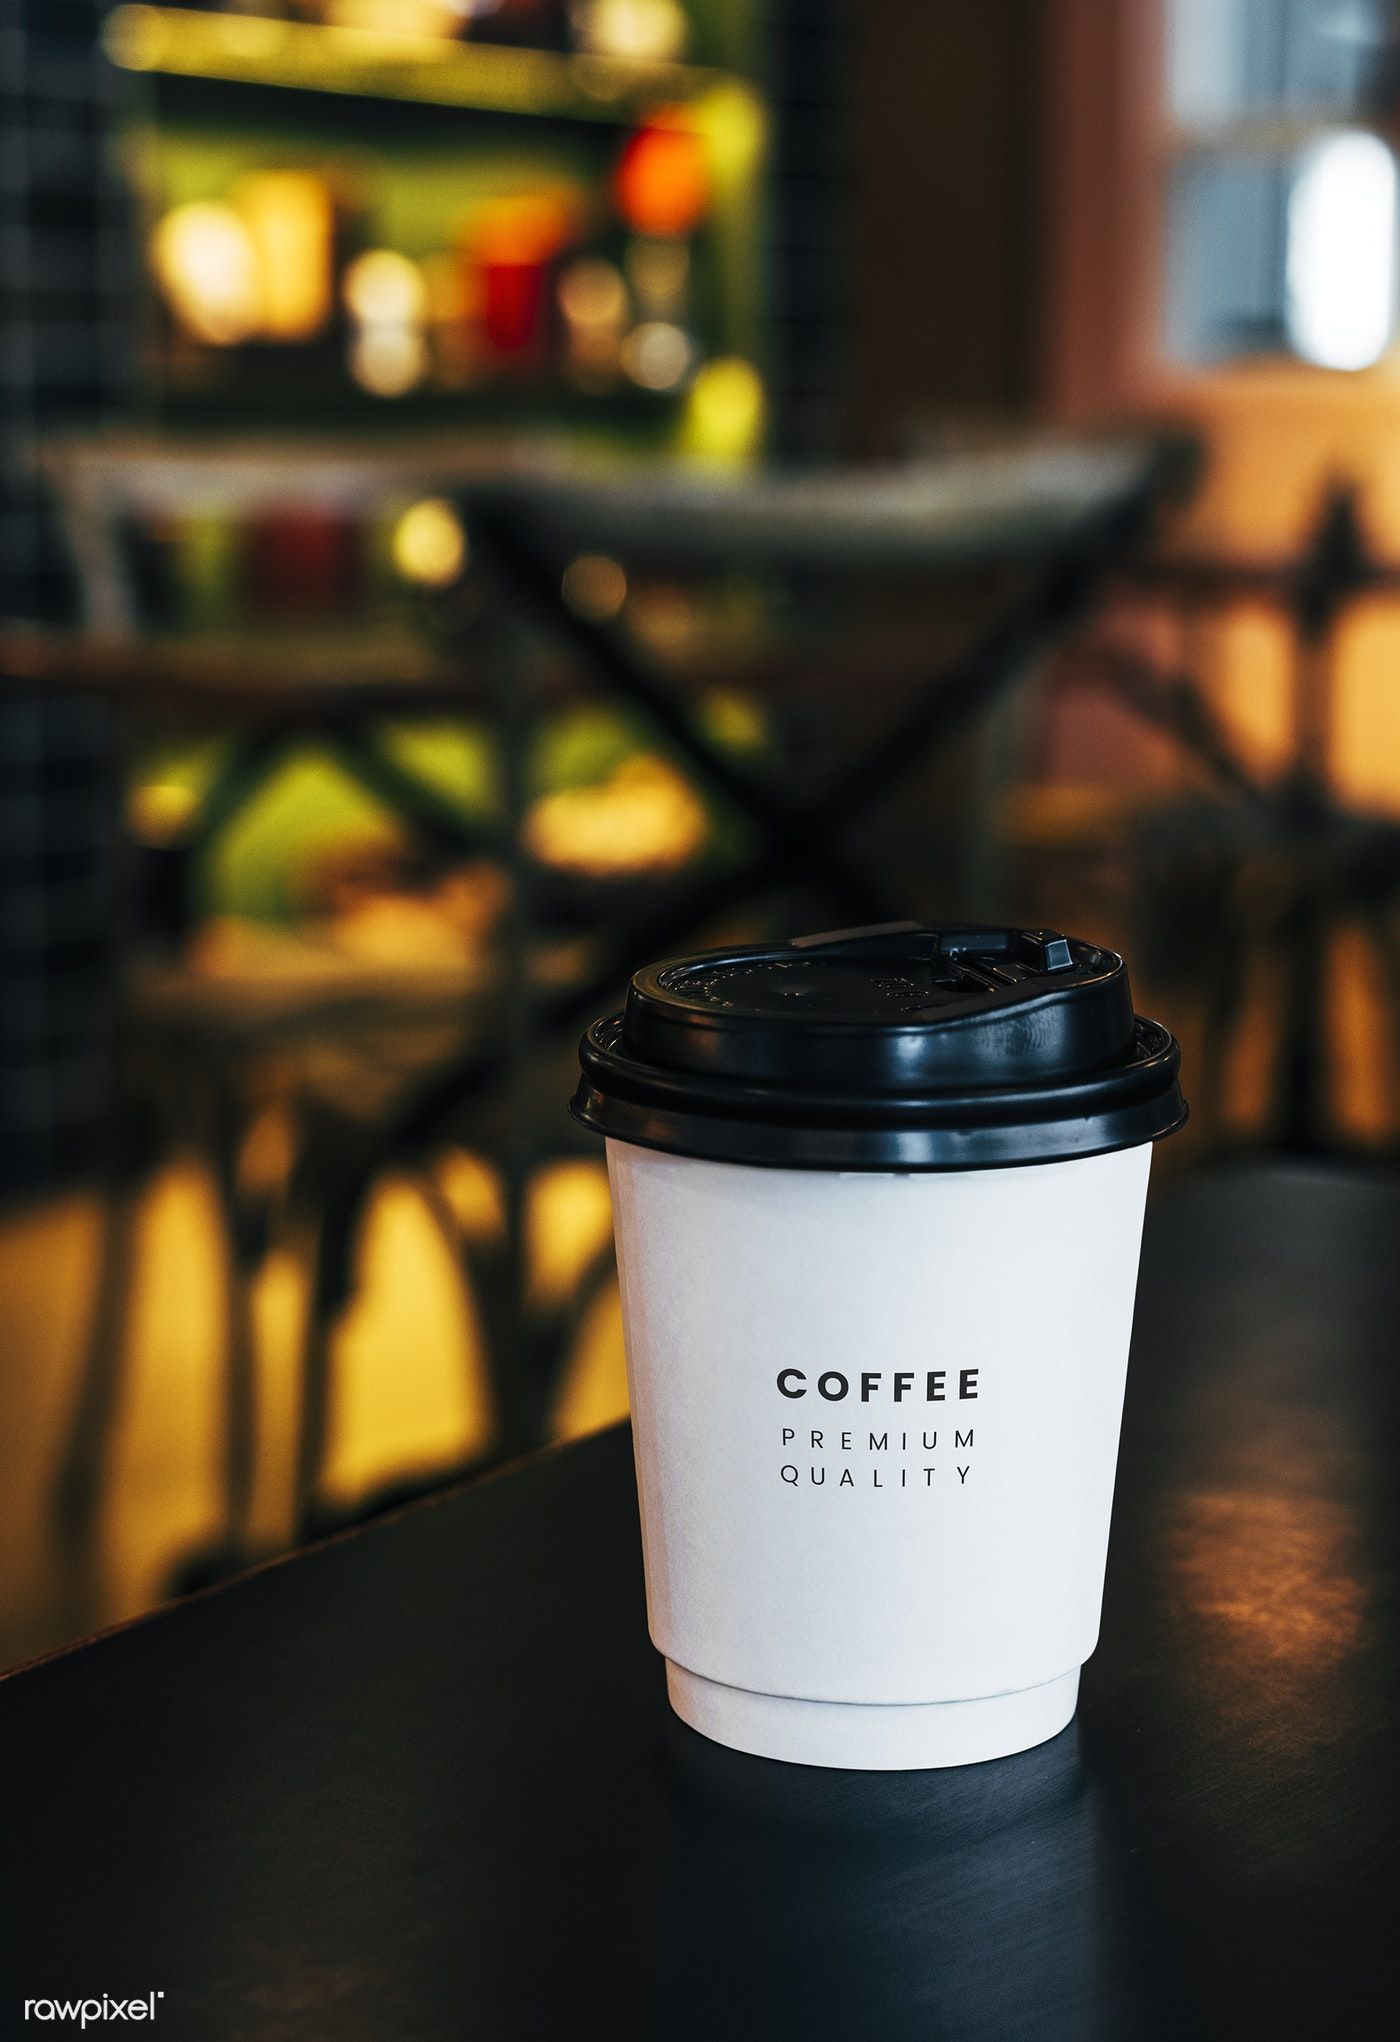 Disposable Coffee Paper Cup Mockup Design Free Image By Rawpixel Com Paper Cup Coffee Cup Design Take Away Coffee Cup